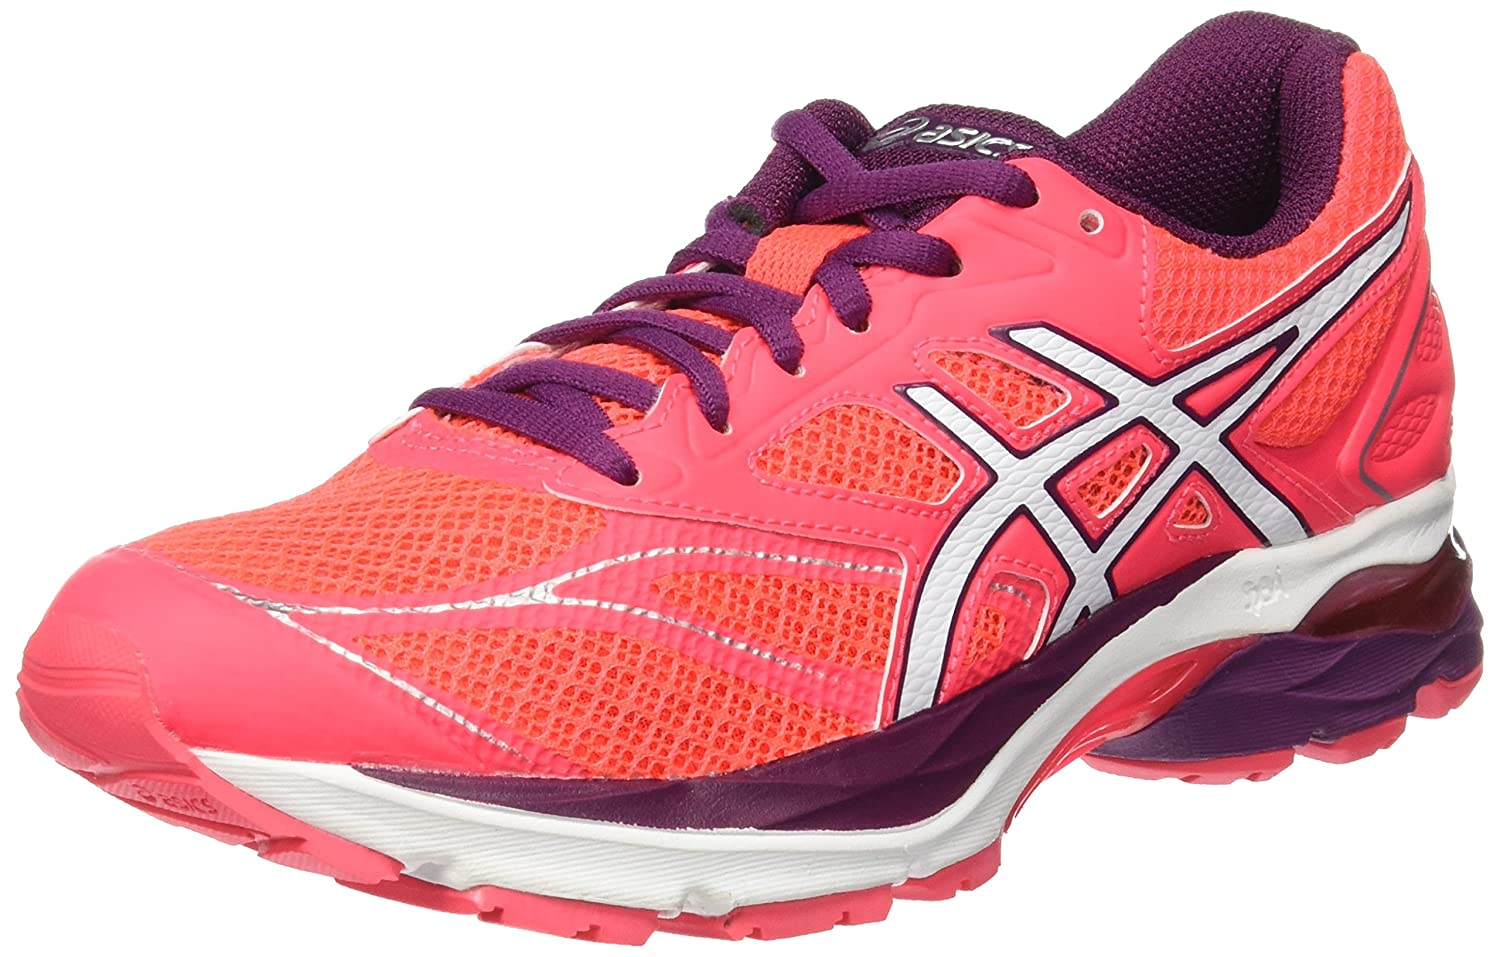 cheaper the cheapest official images Amazon.com | Asics Gel Pulse 8 Womens Running Shoes - Pink ...